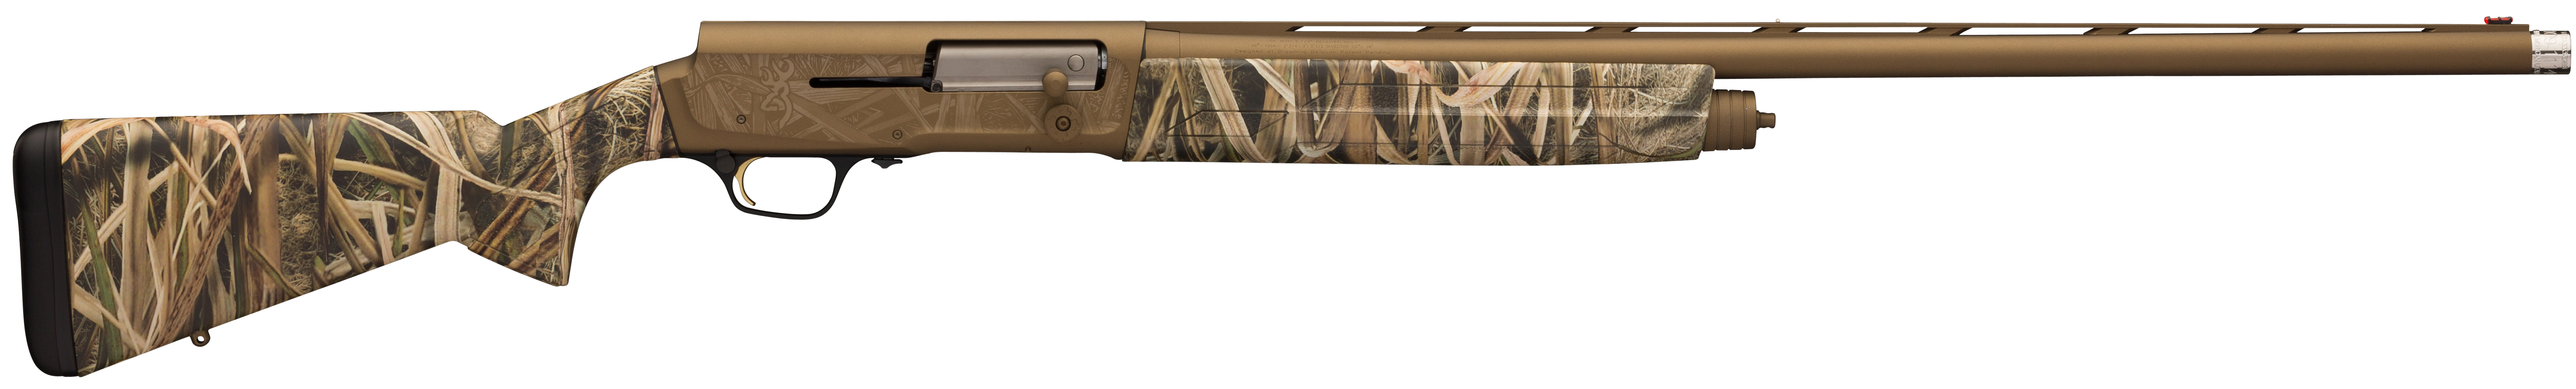 Browning A5 Wicked Wing Semi-Auto Shotgun 3.5'' 12 Gauge 26'' Burnt Bronze Cerakote - Synthetic - Mossy Oak Shadow Grass Blades